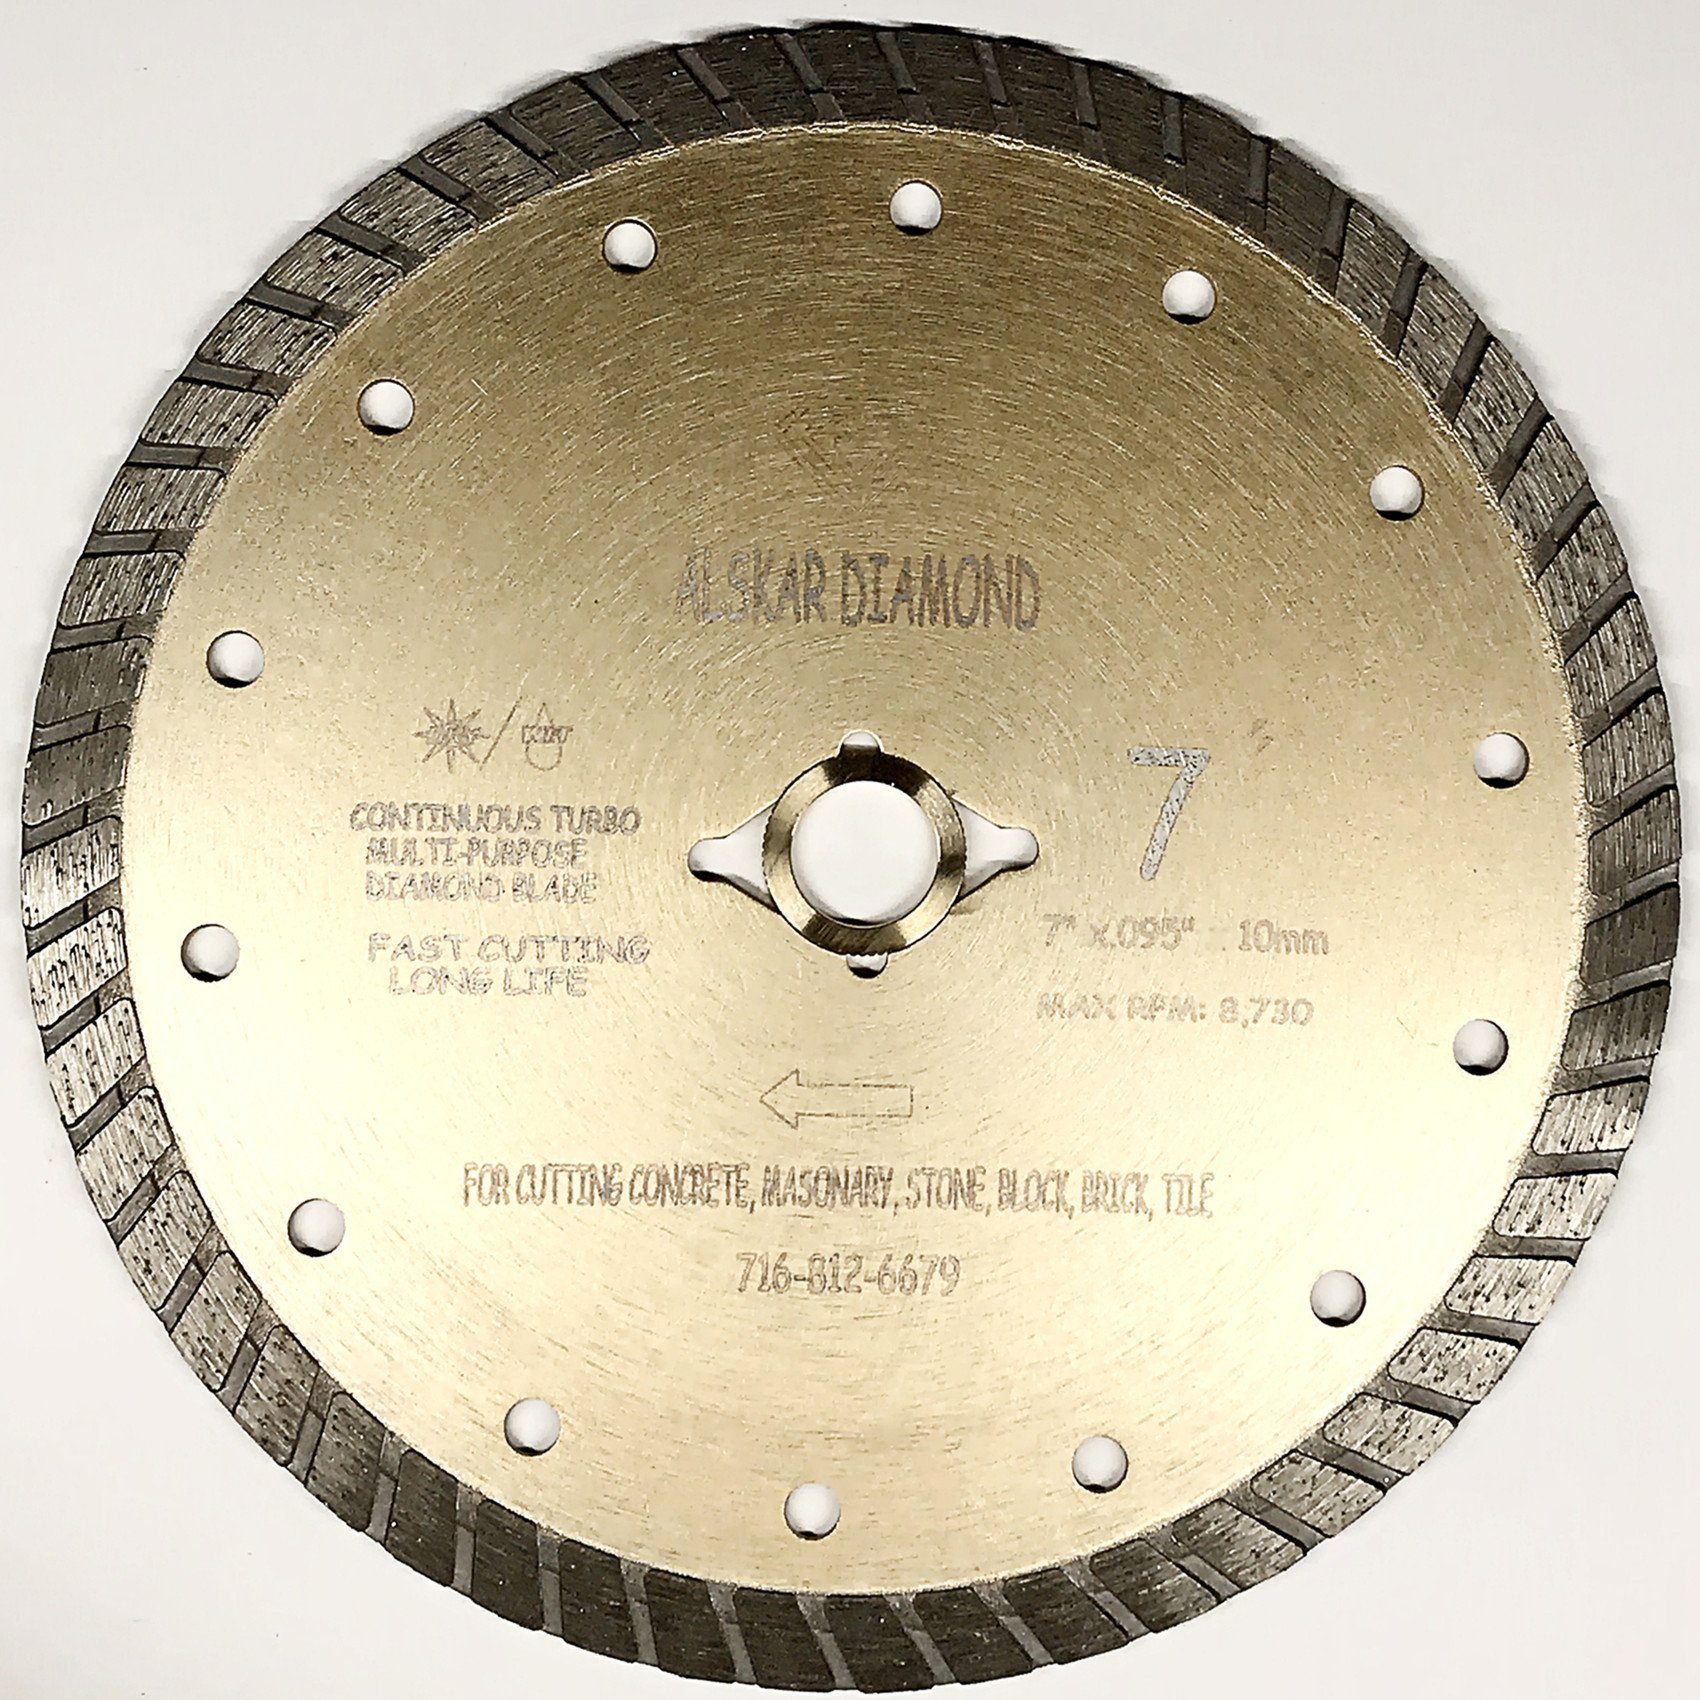 ALSKAR DIAMOND ADLSC 7 inch Dry or Wet Cutting General Purpose Continuous Turbo Power Saw Diamond Blades for Concrete Masonry Brick Stone (7'')